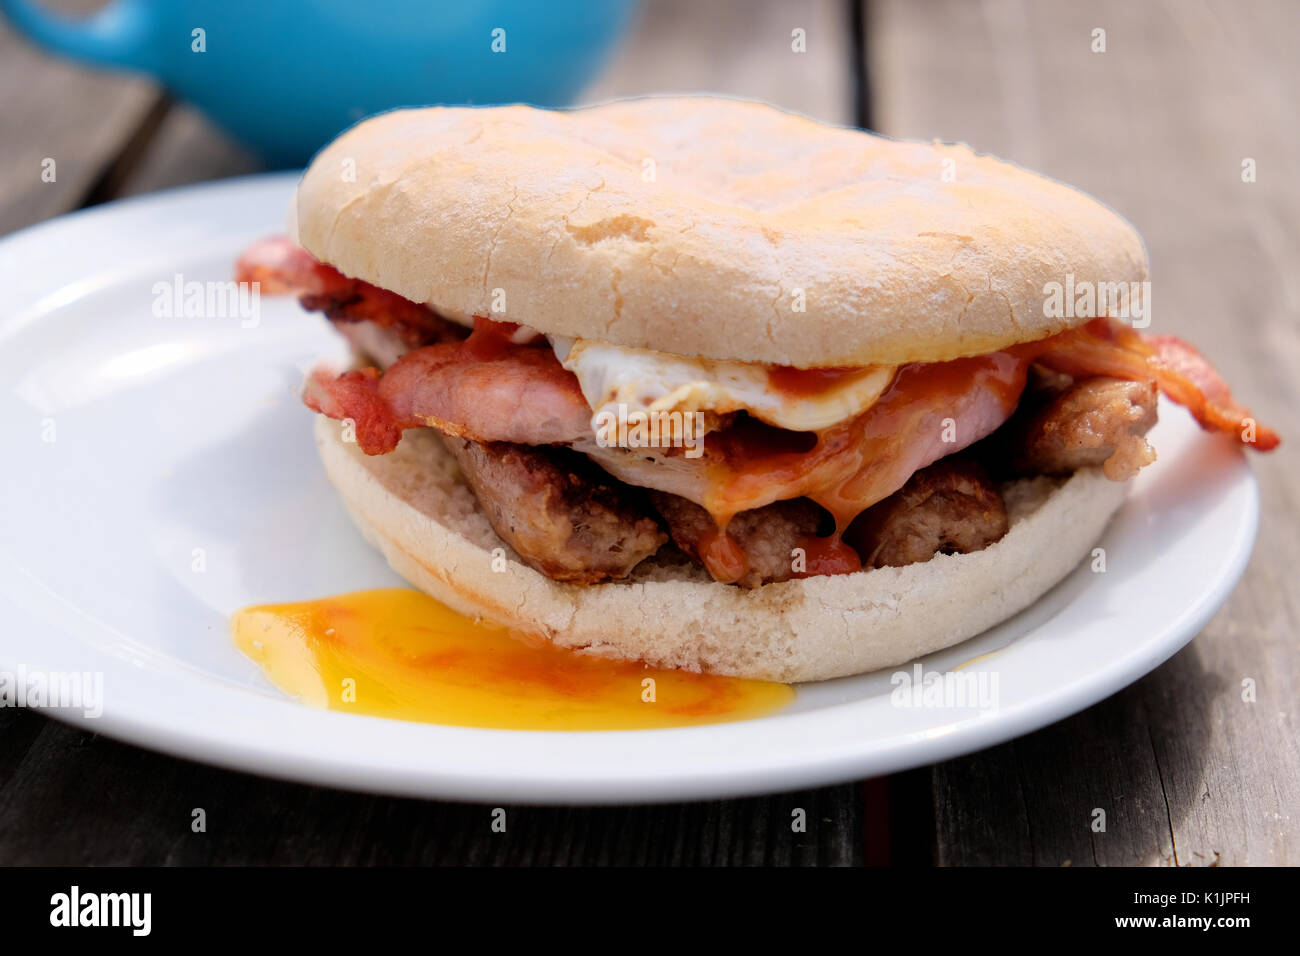 A freshly cooked breakfast bap. Bacon, sausage and fried egg cooked at a outdoor cafe and served in a bread roll. - Stock Image